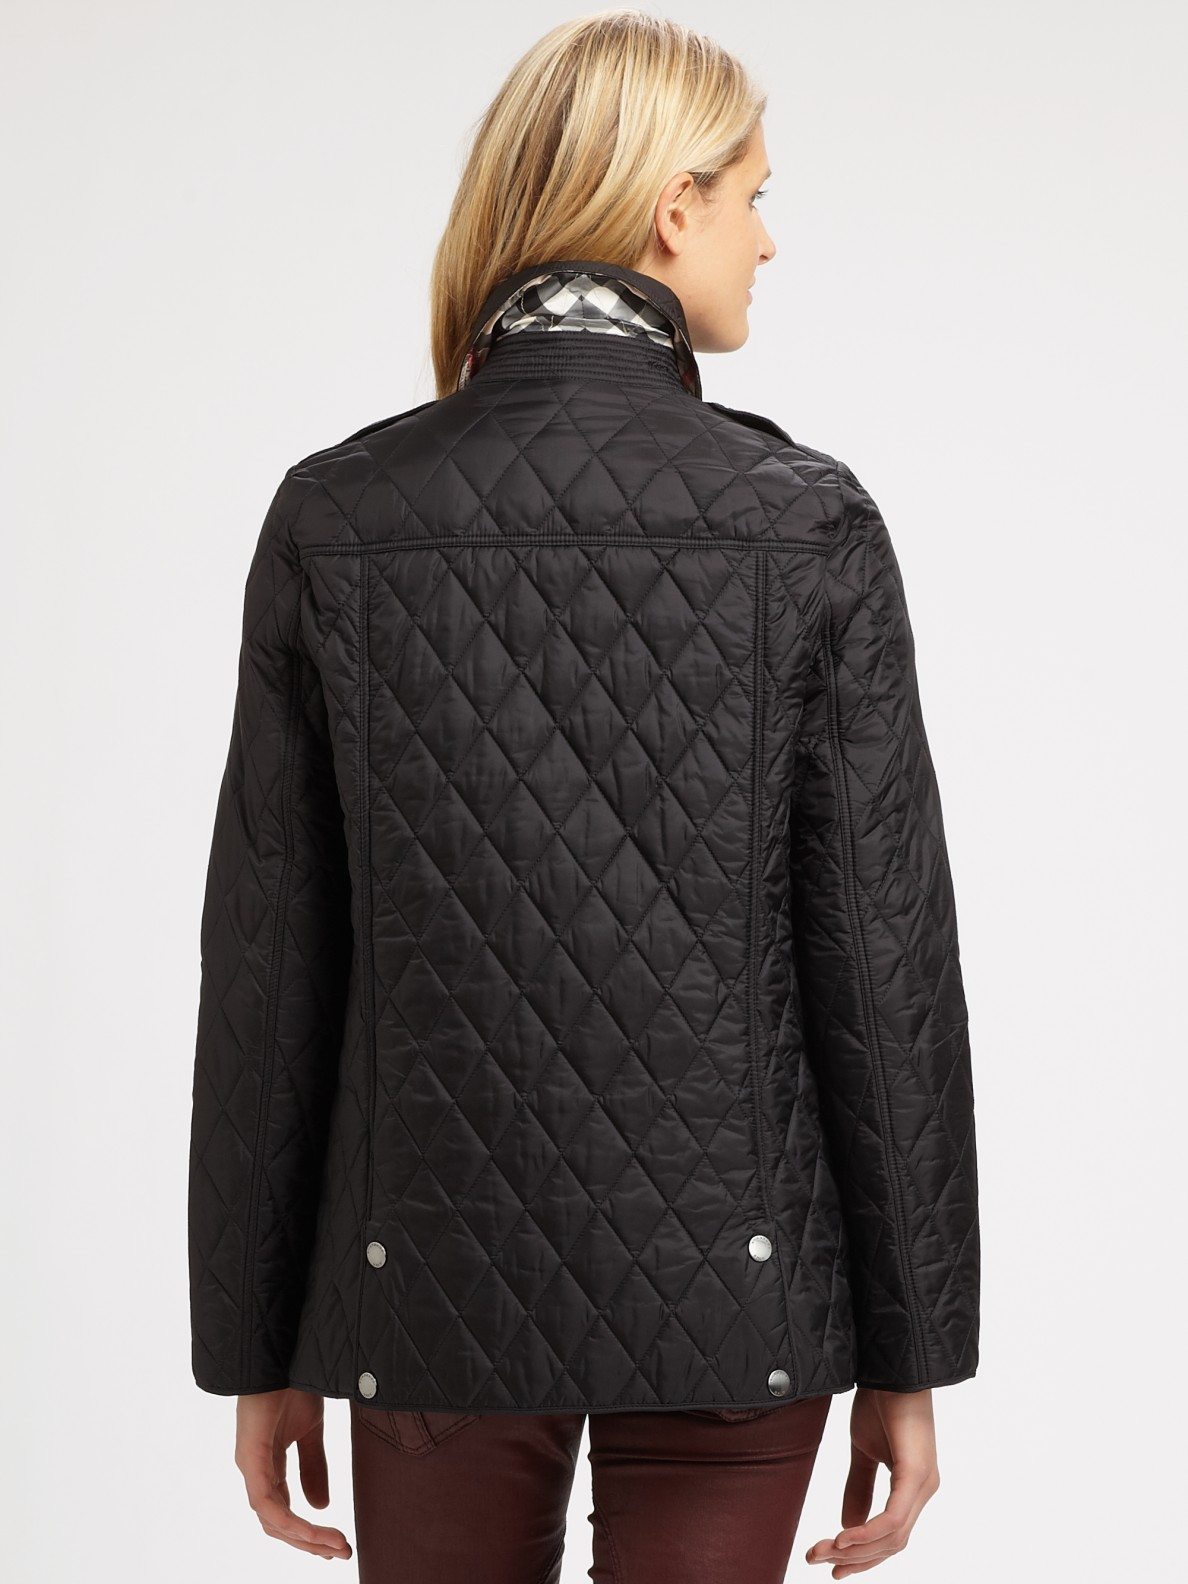 Burberry Brit Pirmont Quilted Jacket In Black Lyst